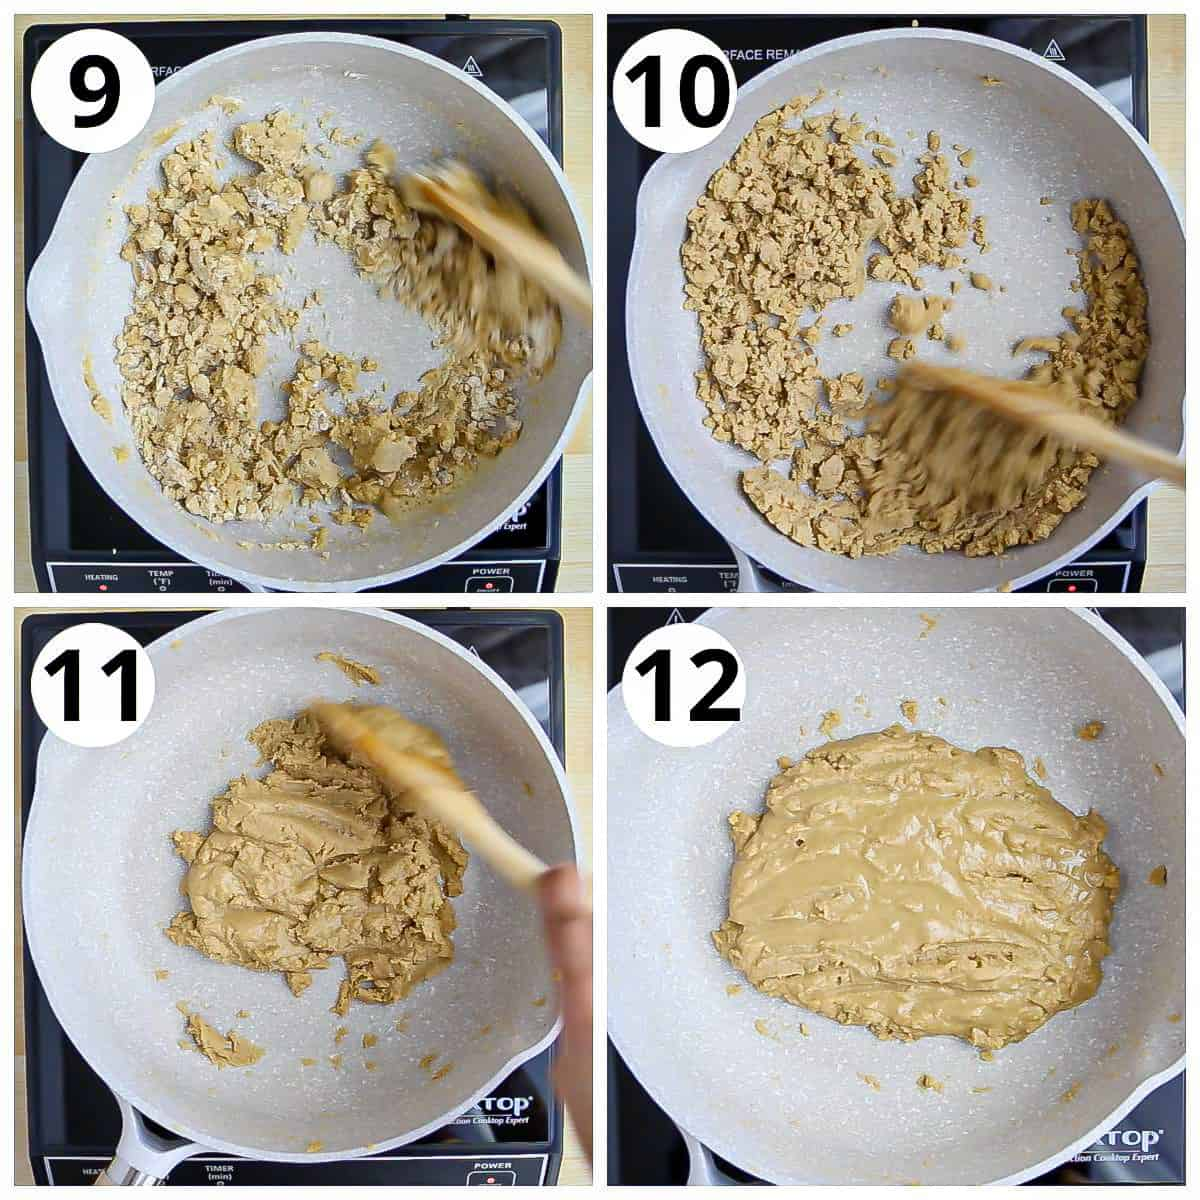 Steps for roasting wholewheat flour for making Panjiri